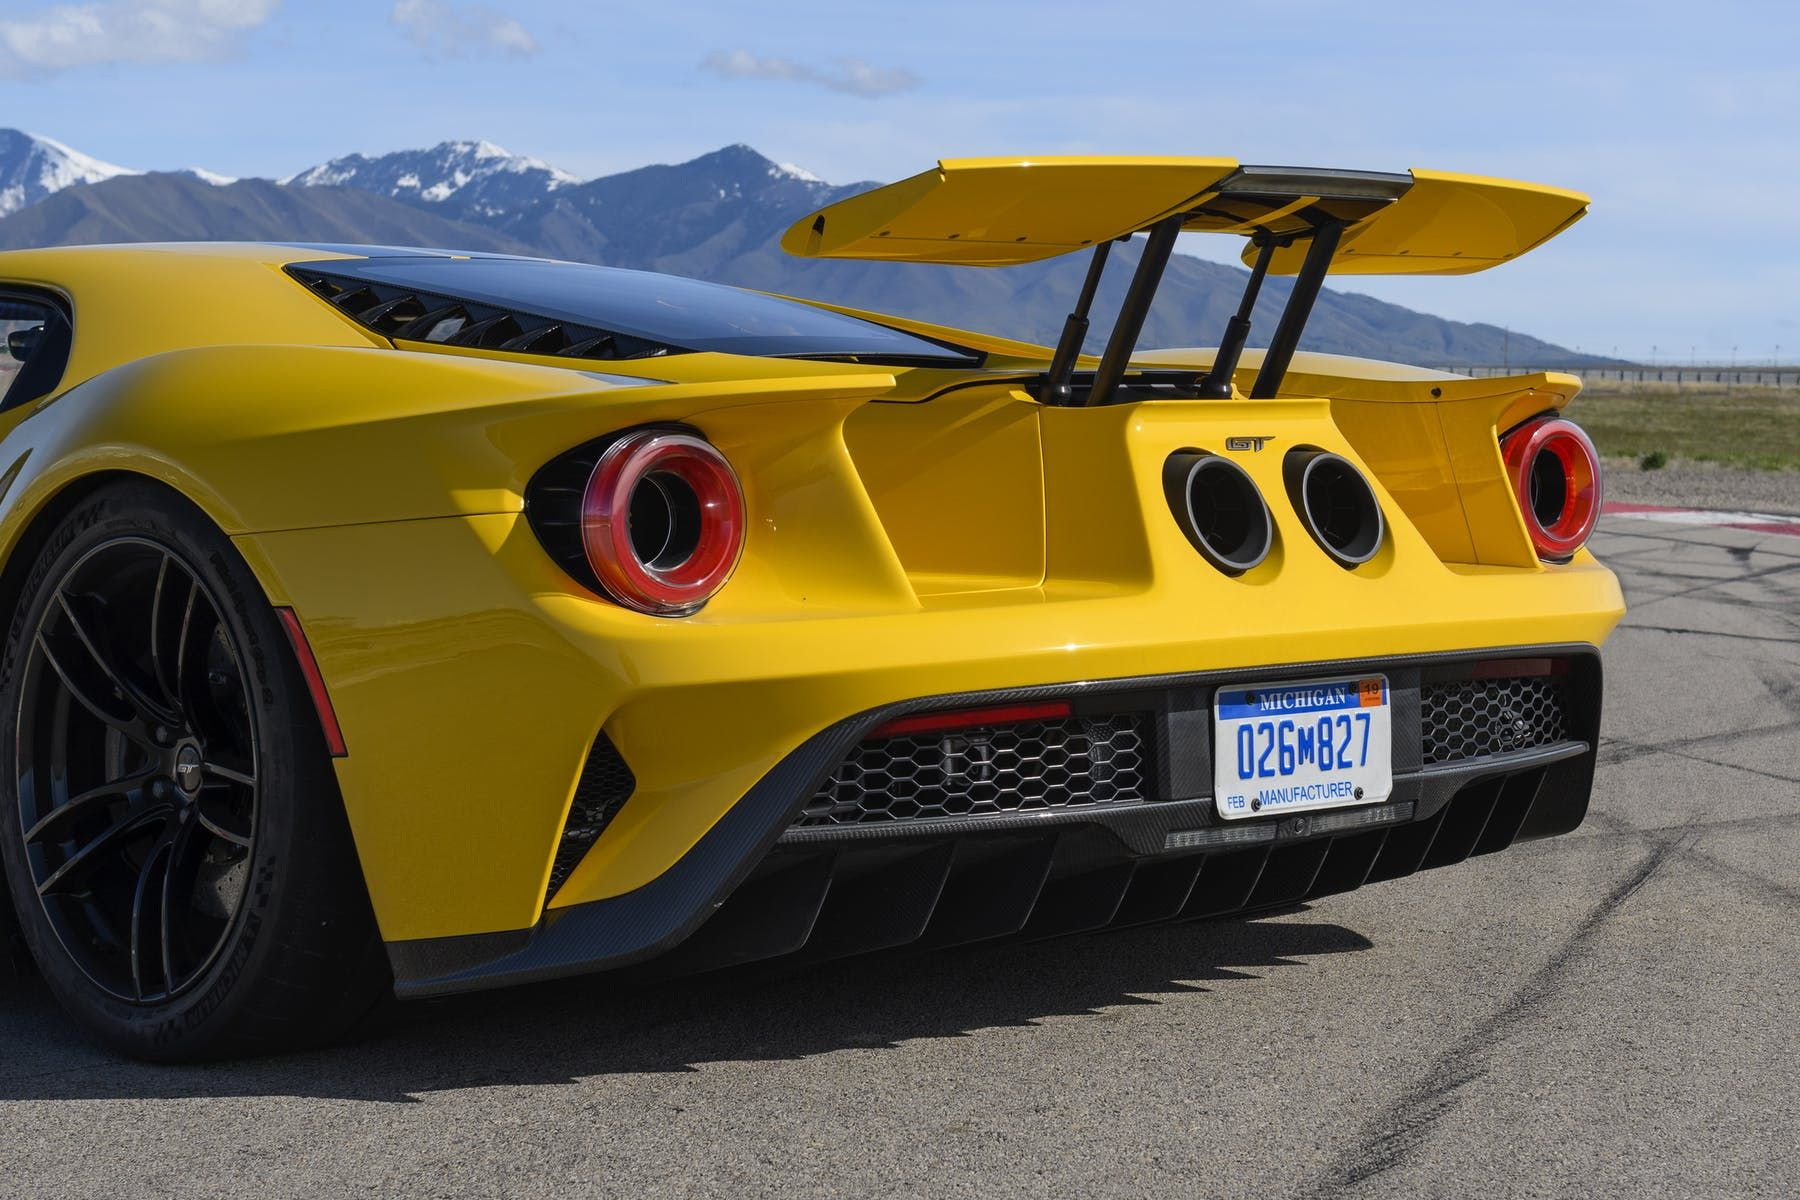 Ford Gt Review New Supercar On Road And Track Image  Drivetribe